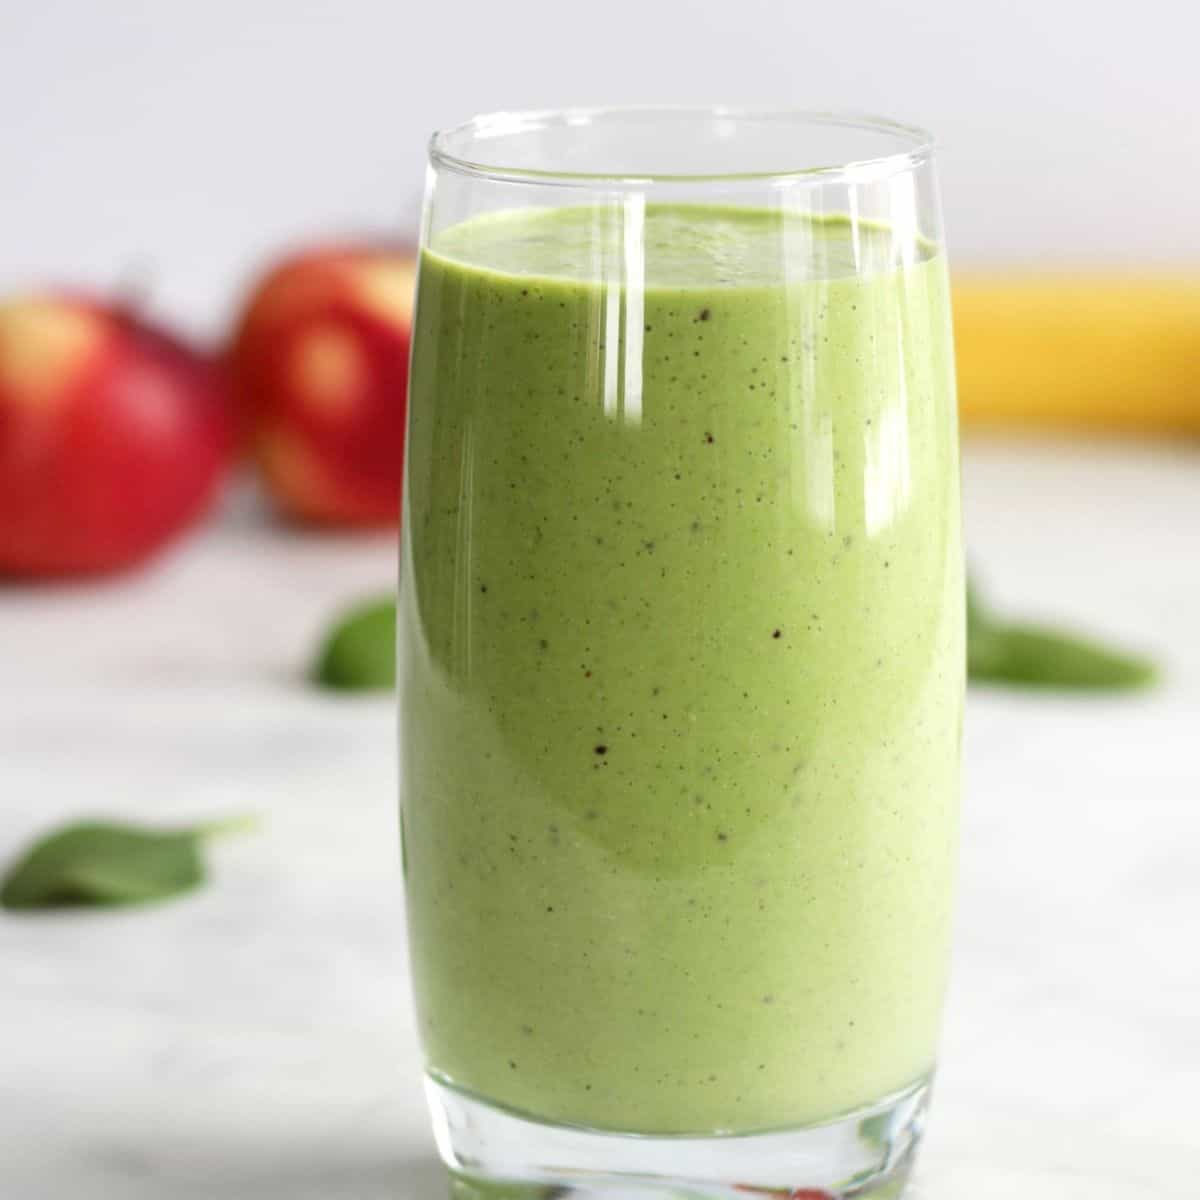 glass of green smoothie with apples and banana in background